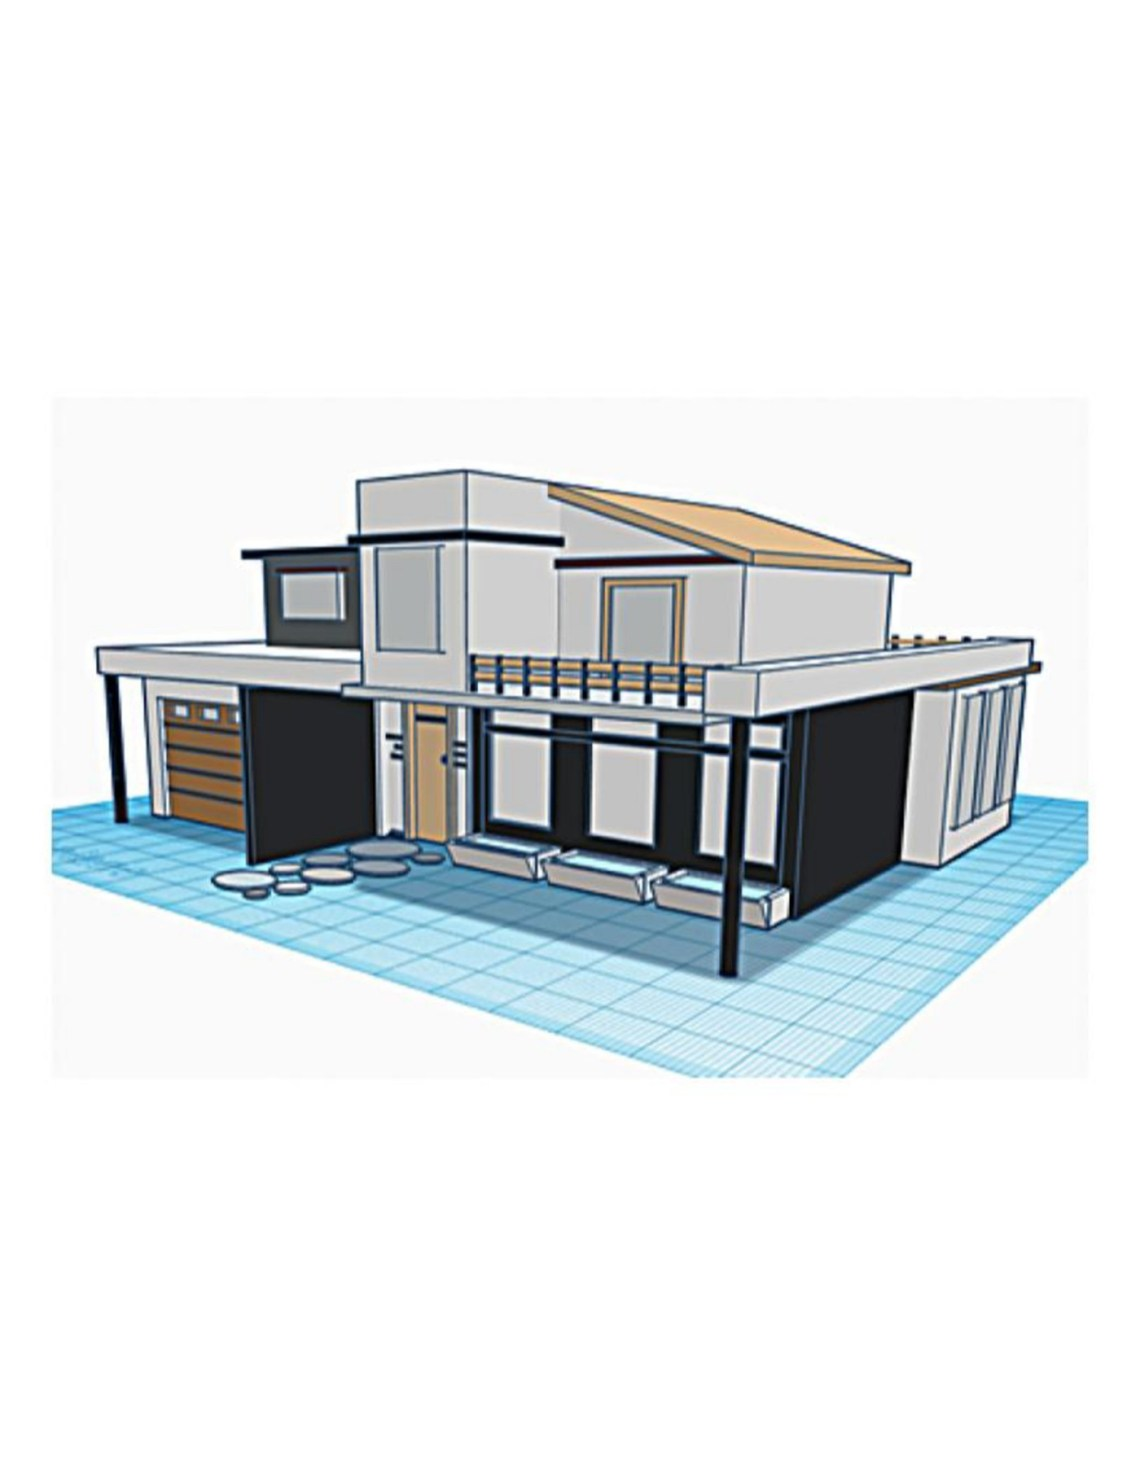 cad rendering of a house in 3d